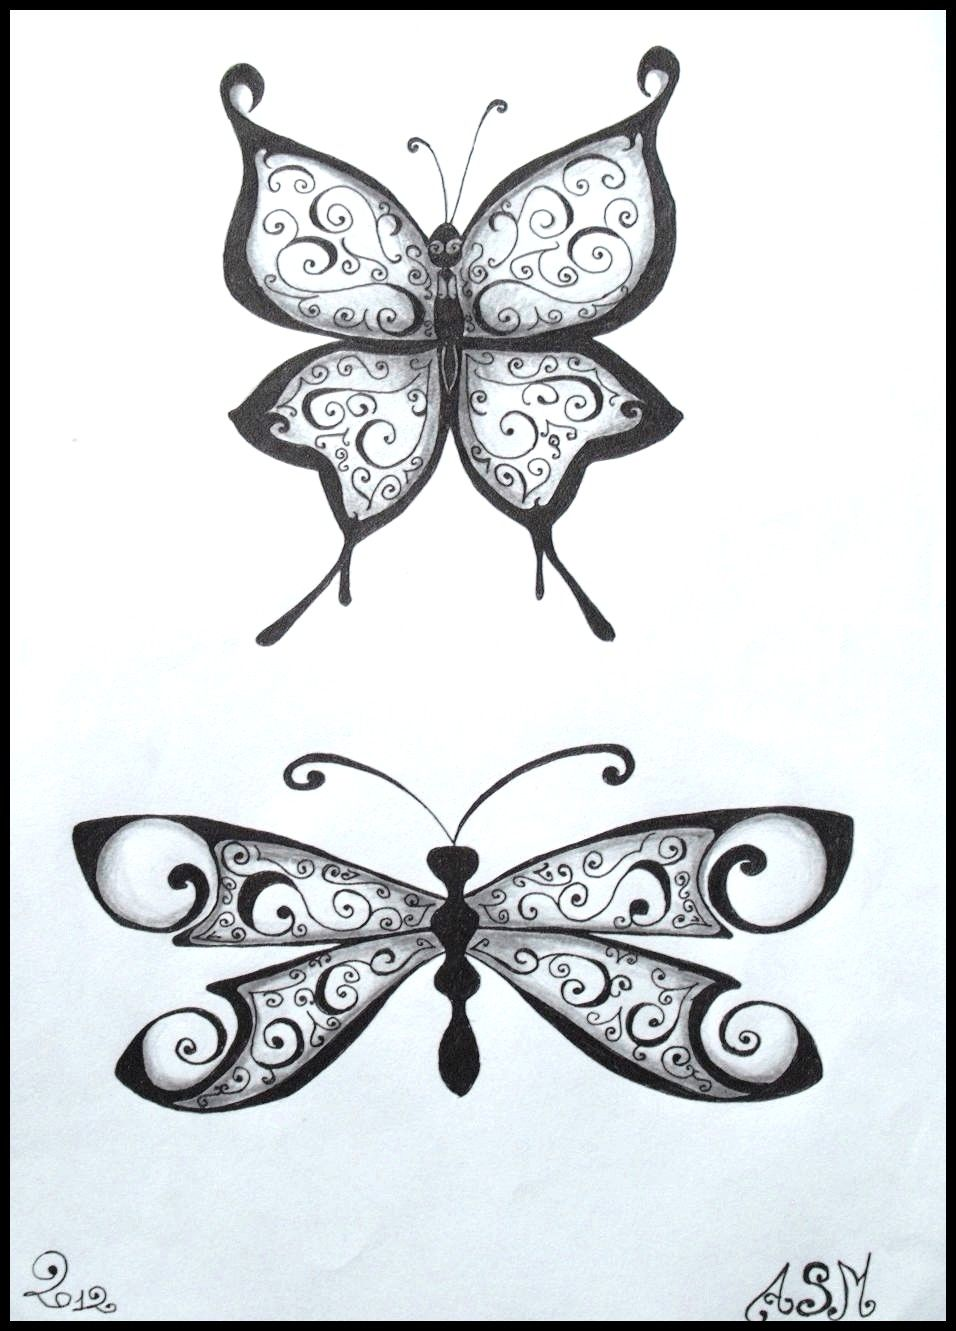 Butterfly tattoo dessin crayon drawing papillon tatouage dessins tatouage tatouages - Dessin libellule ...